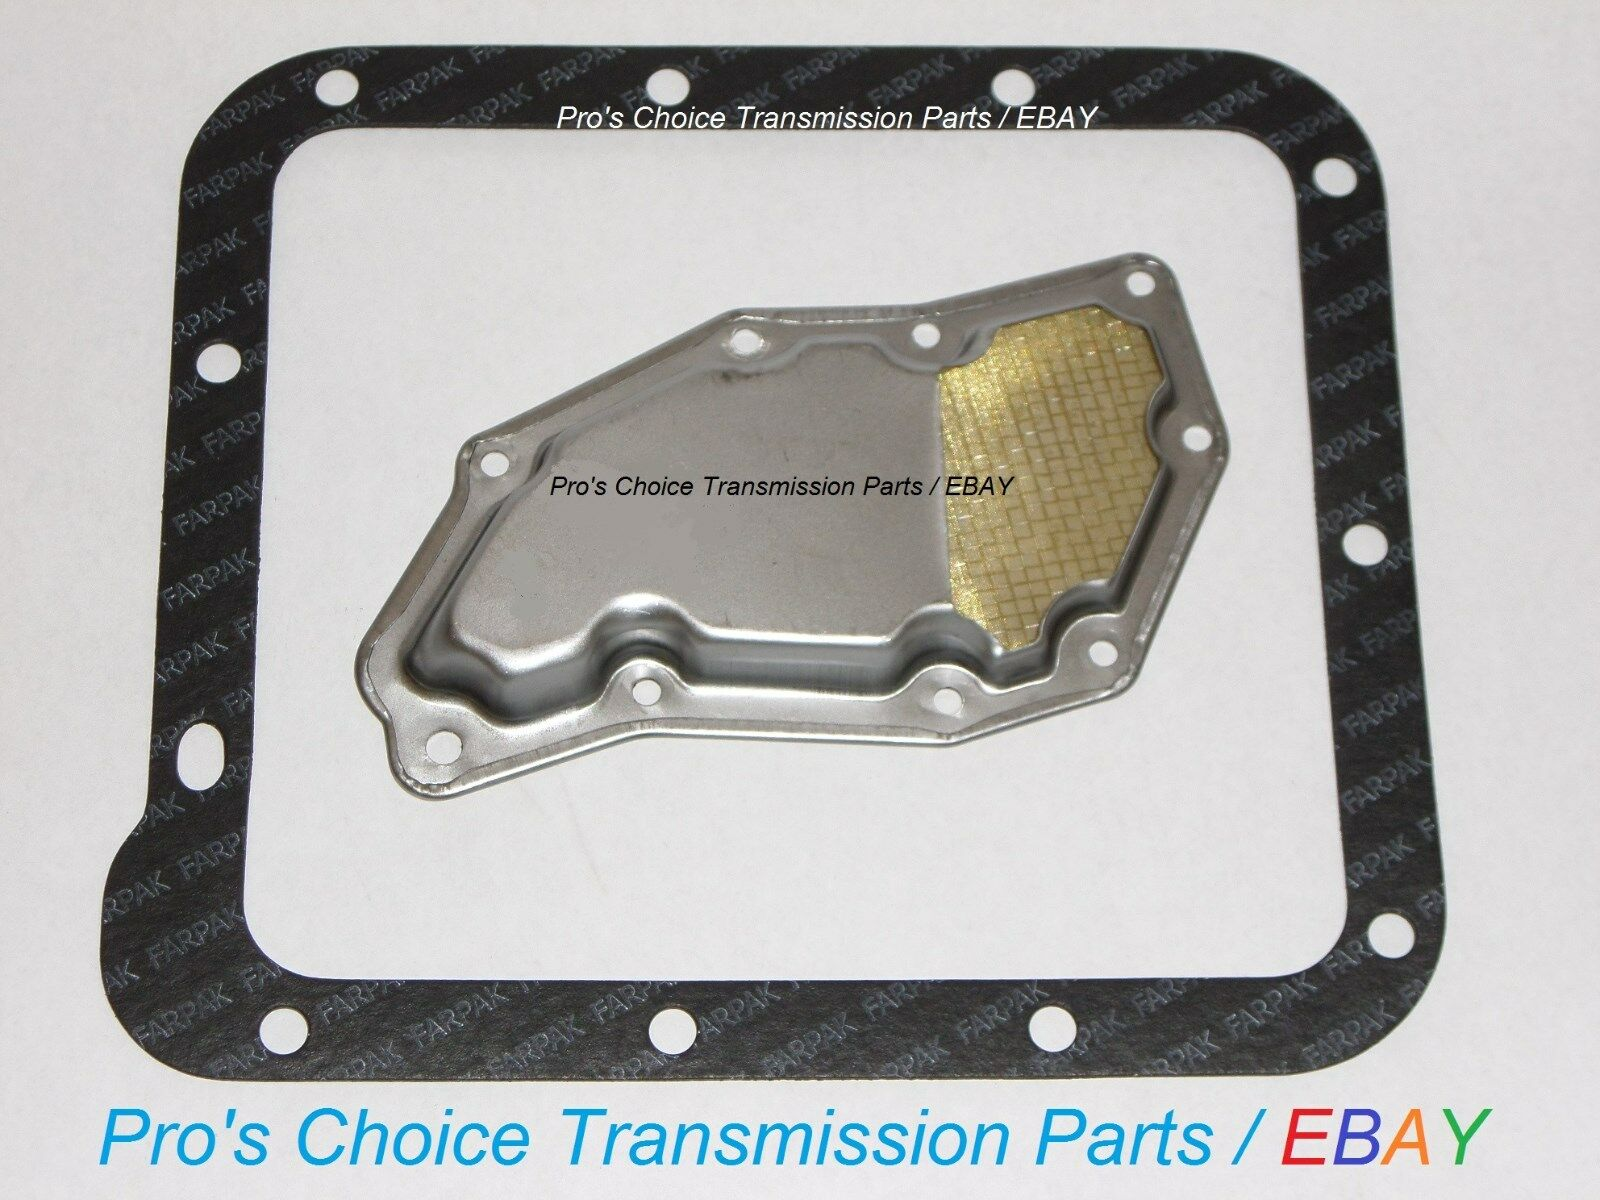 C-4 Filter Kit-with Duraprene Gasket--Fits 1973 to 1977 Ford Bronco /& 4x4 Trucks